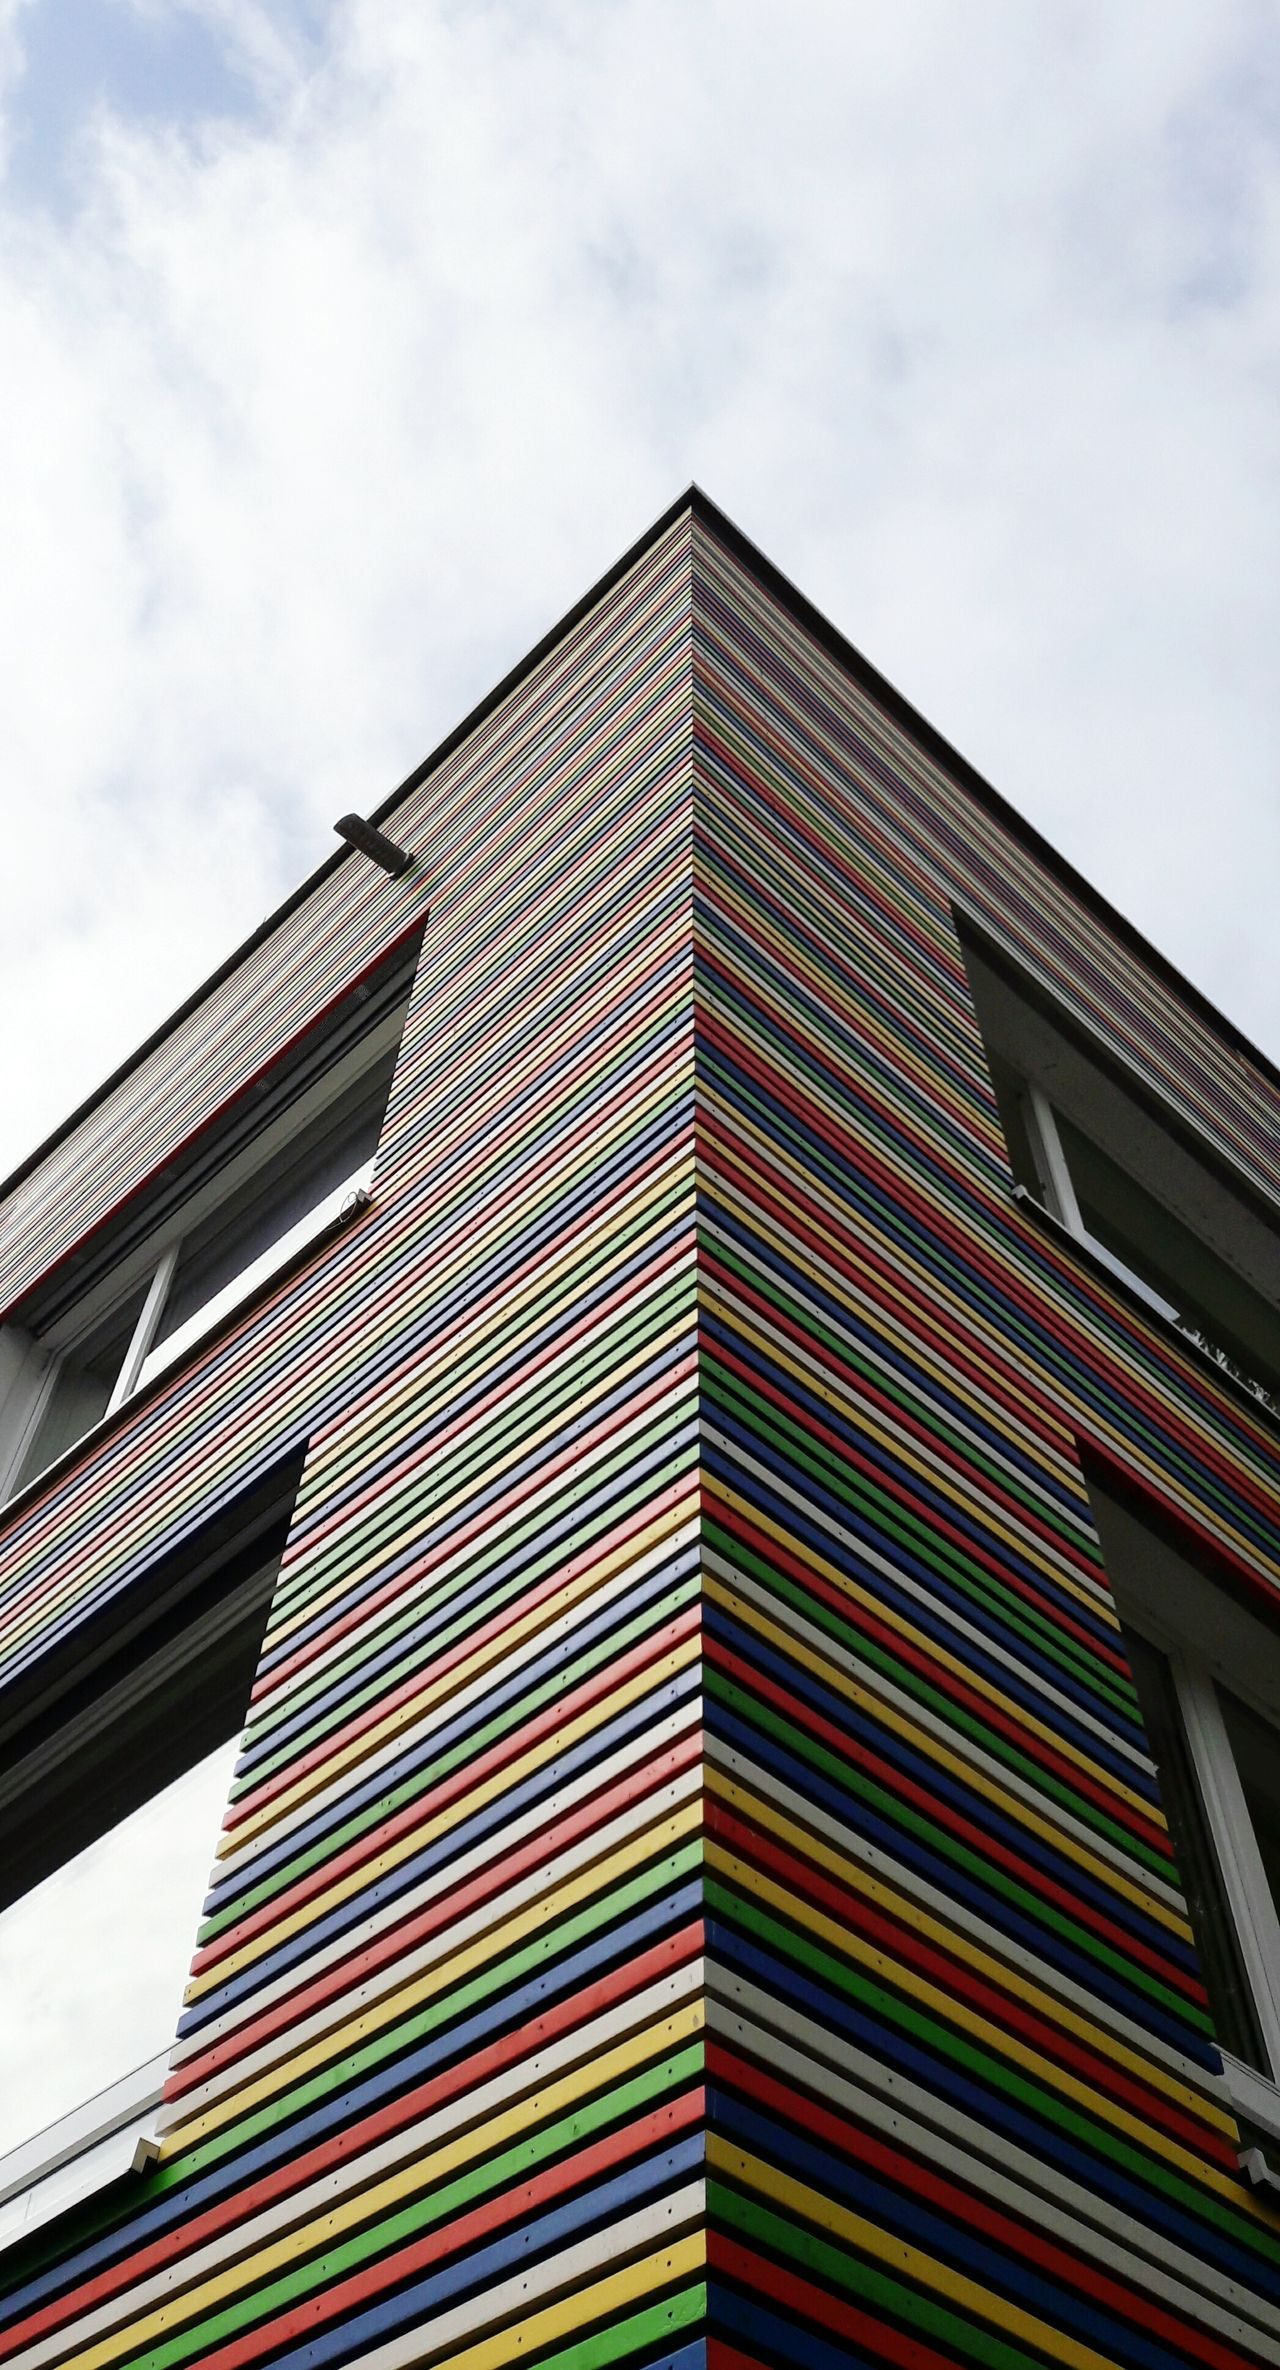 Multi Colored Architecture Built Structure Modern Outdoors Cloud - Sky Low Angle View Sky Façade Facade Building Facade Colours Architectural Feature Architectural Detail City Urban Geometry Urban Lifestyle